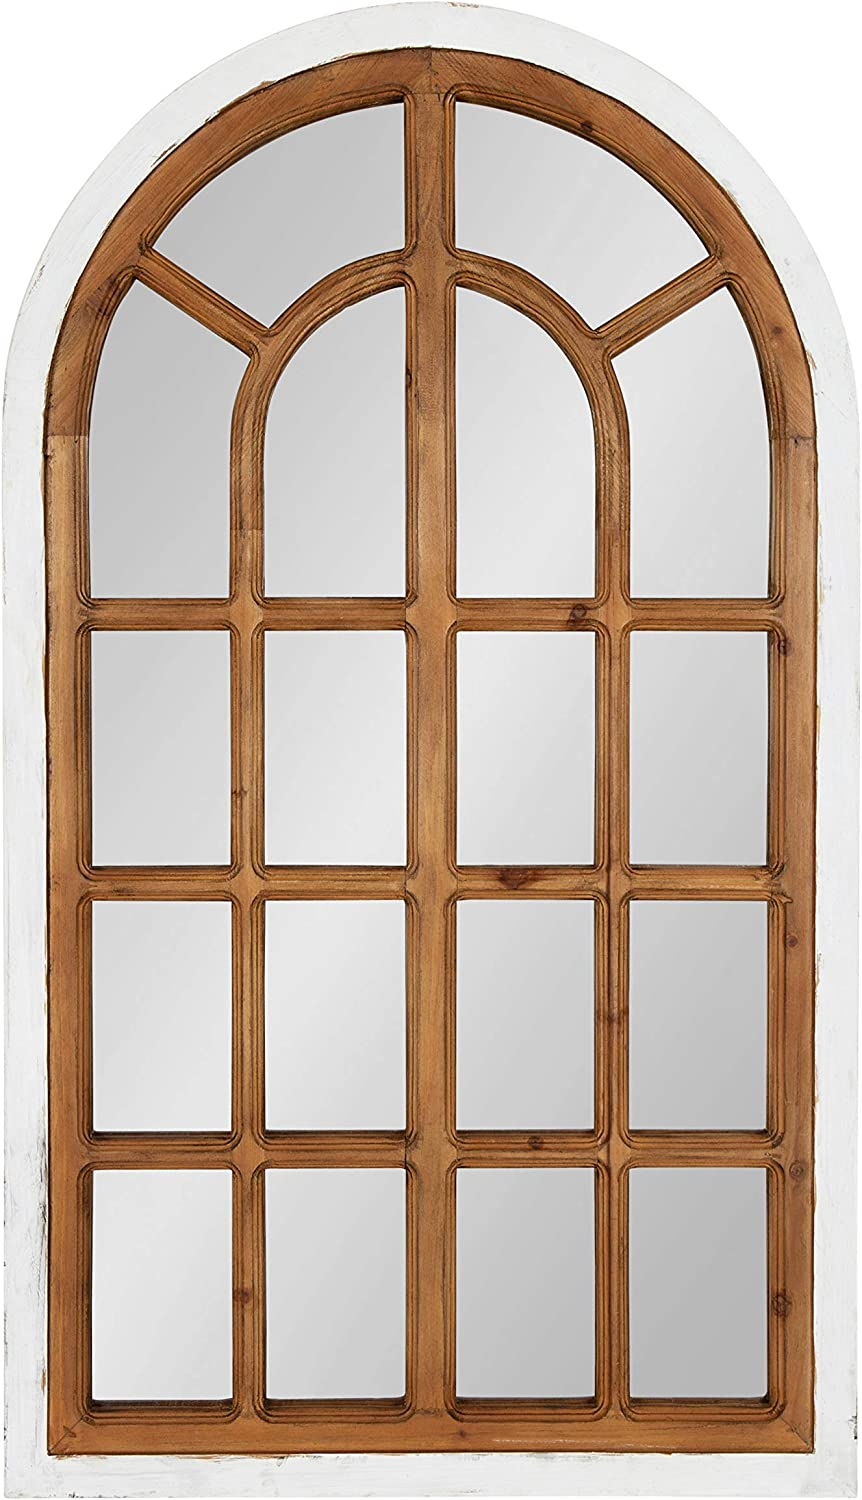 Kate and Laurel Boldmere Traditional Wood Windowpane Arch Wall Mirror, 22